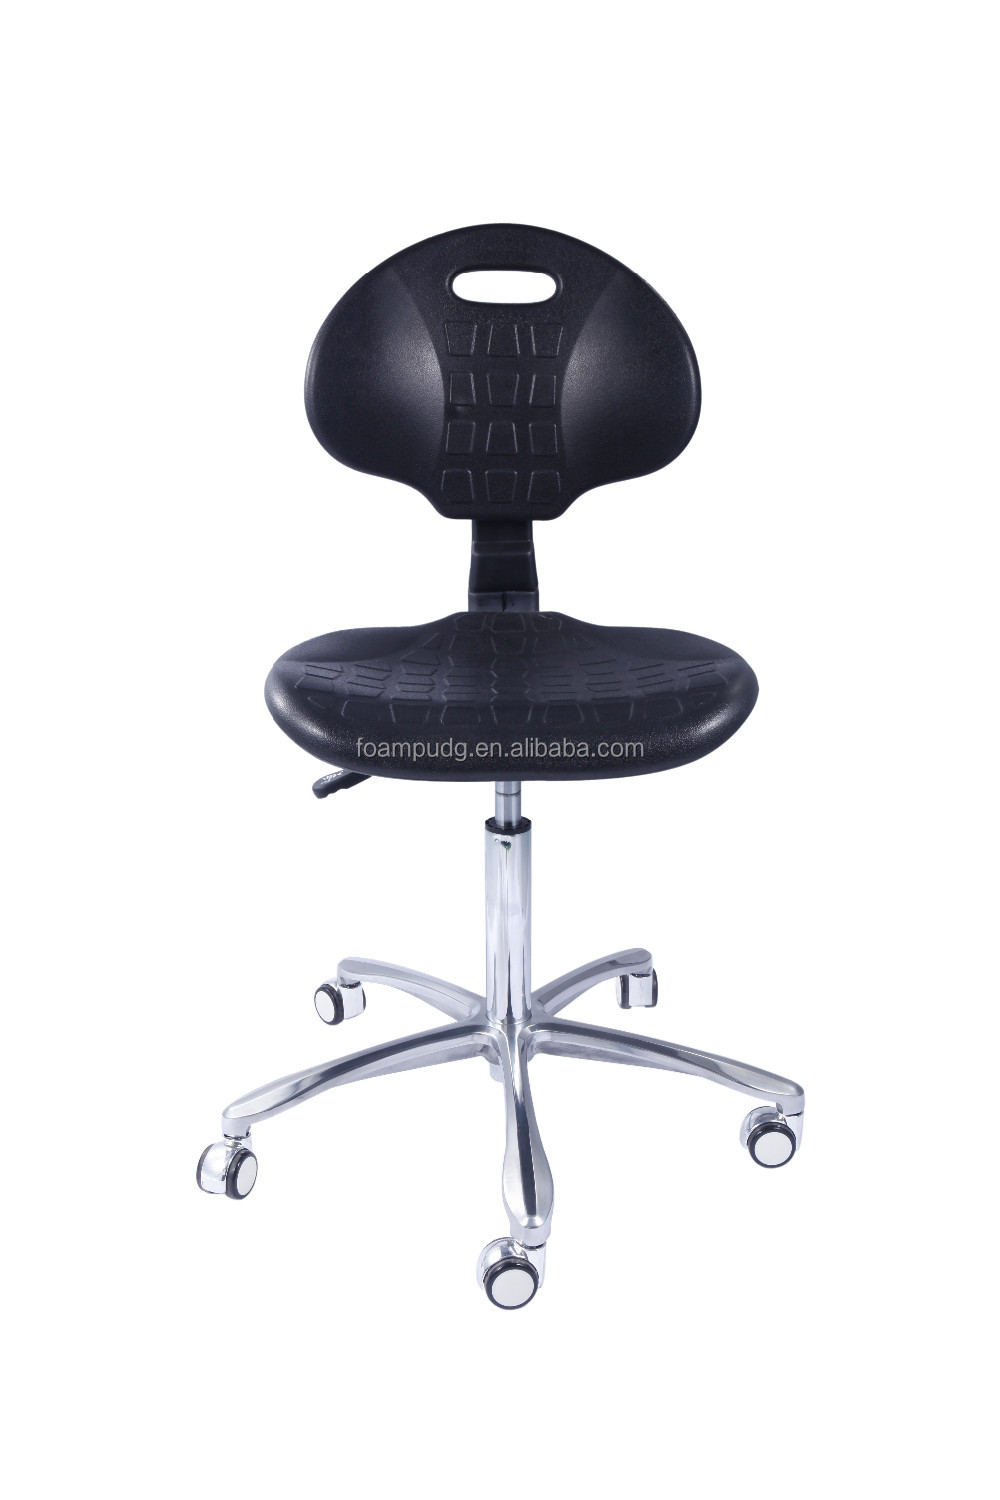 Stupendous Bigao School Metal Adjustable Height Stainless Steel Lab Stool Chair Buy Bigao School Metal Adjustable Height Stainless Steel Lab Stool Forskolin Free Trial Chair Design Images Forskolin Free Trialorg